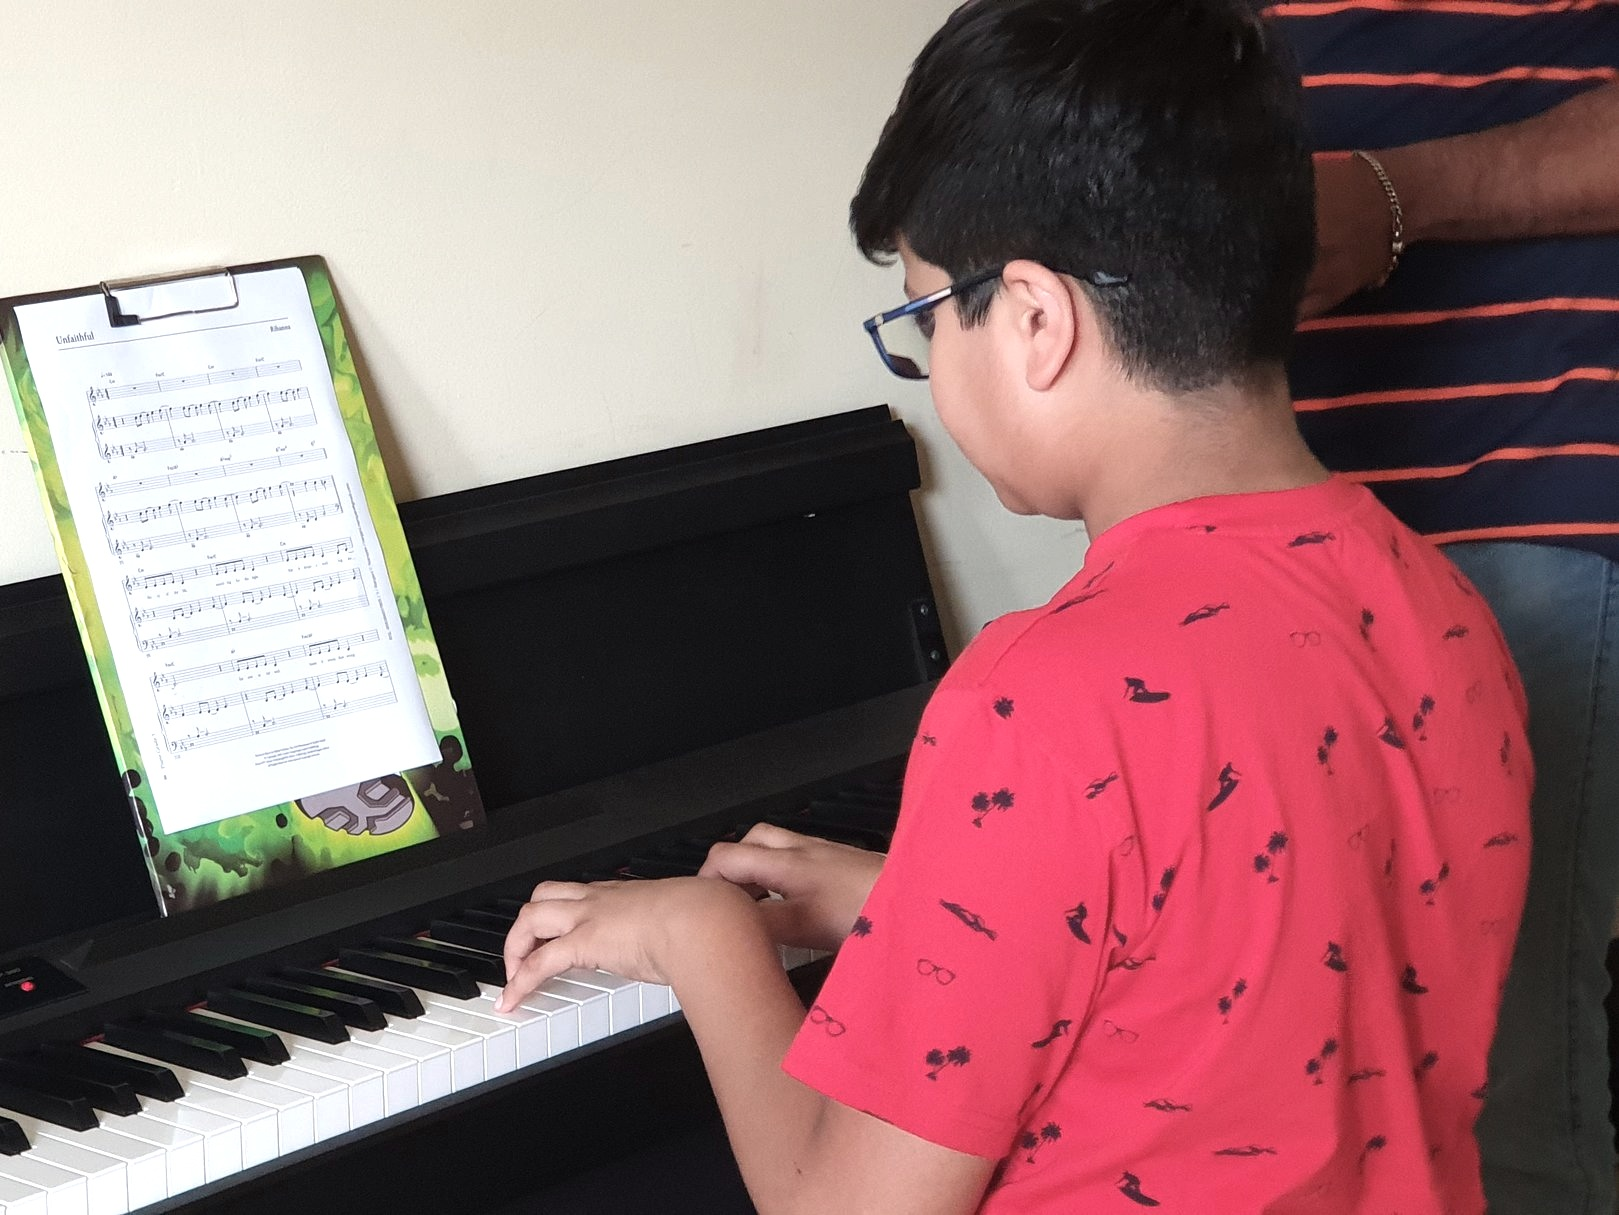 Teaching style - Lessons, Events, Assessments and Projects (LEAP) — are the four pillars of our music education program. Students are encouraged to perform, take assessment and work on projects to help them develop skill and confidence.